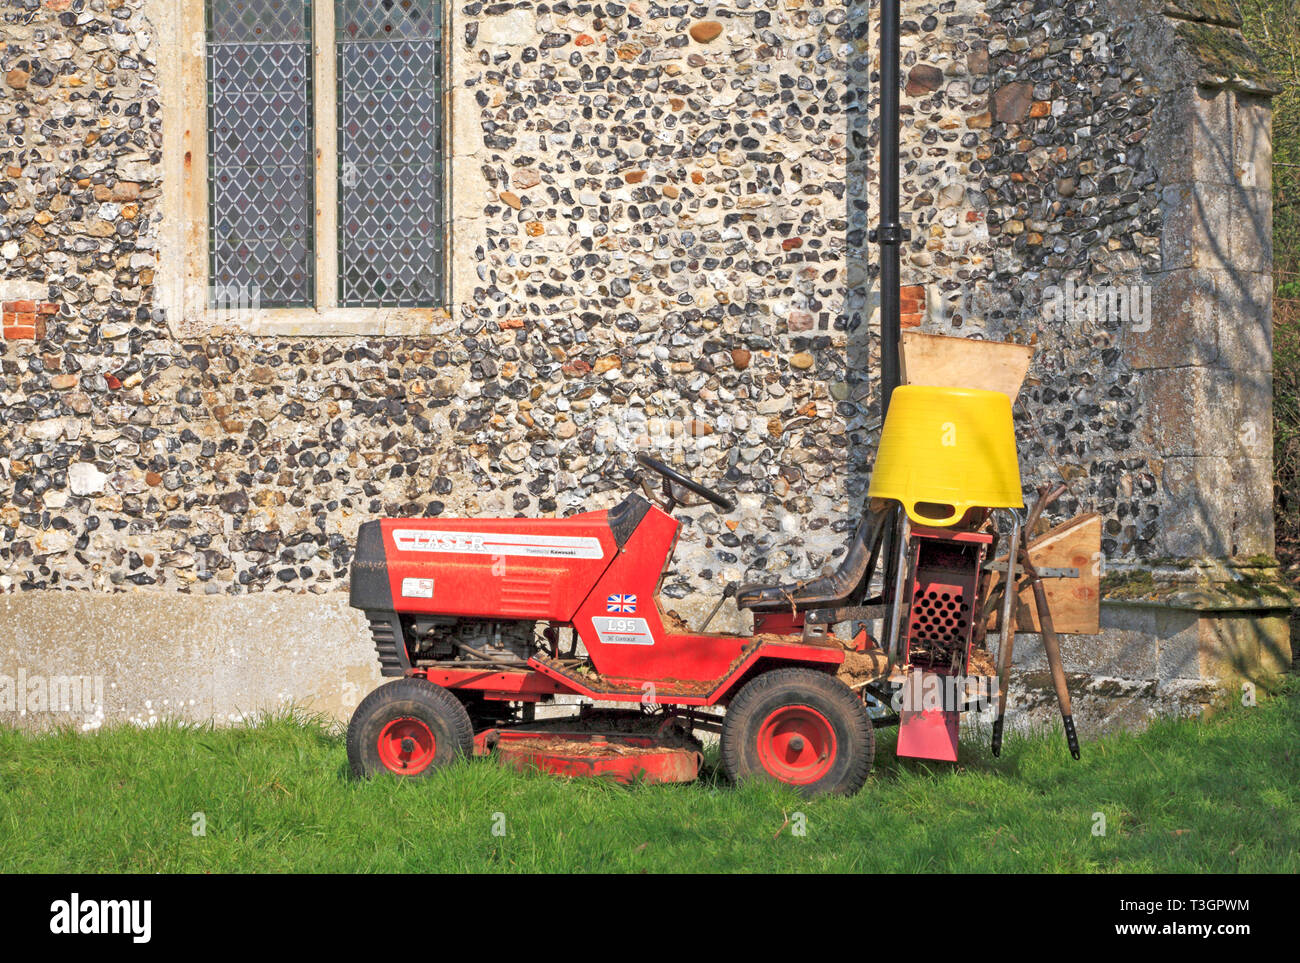 A motor mower with gardening maintenance equipment in the churchyard at Hassingham, Norfolk, England, United Kingdom, Europe. - Stock Image